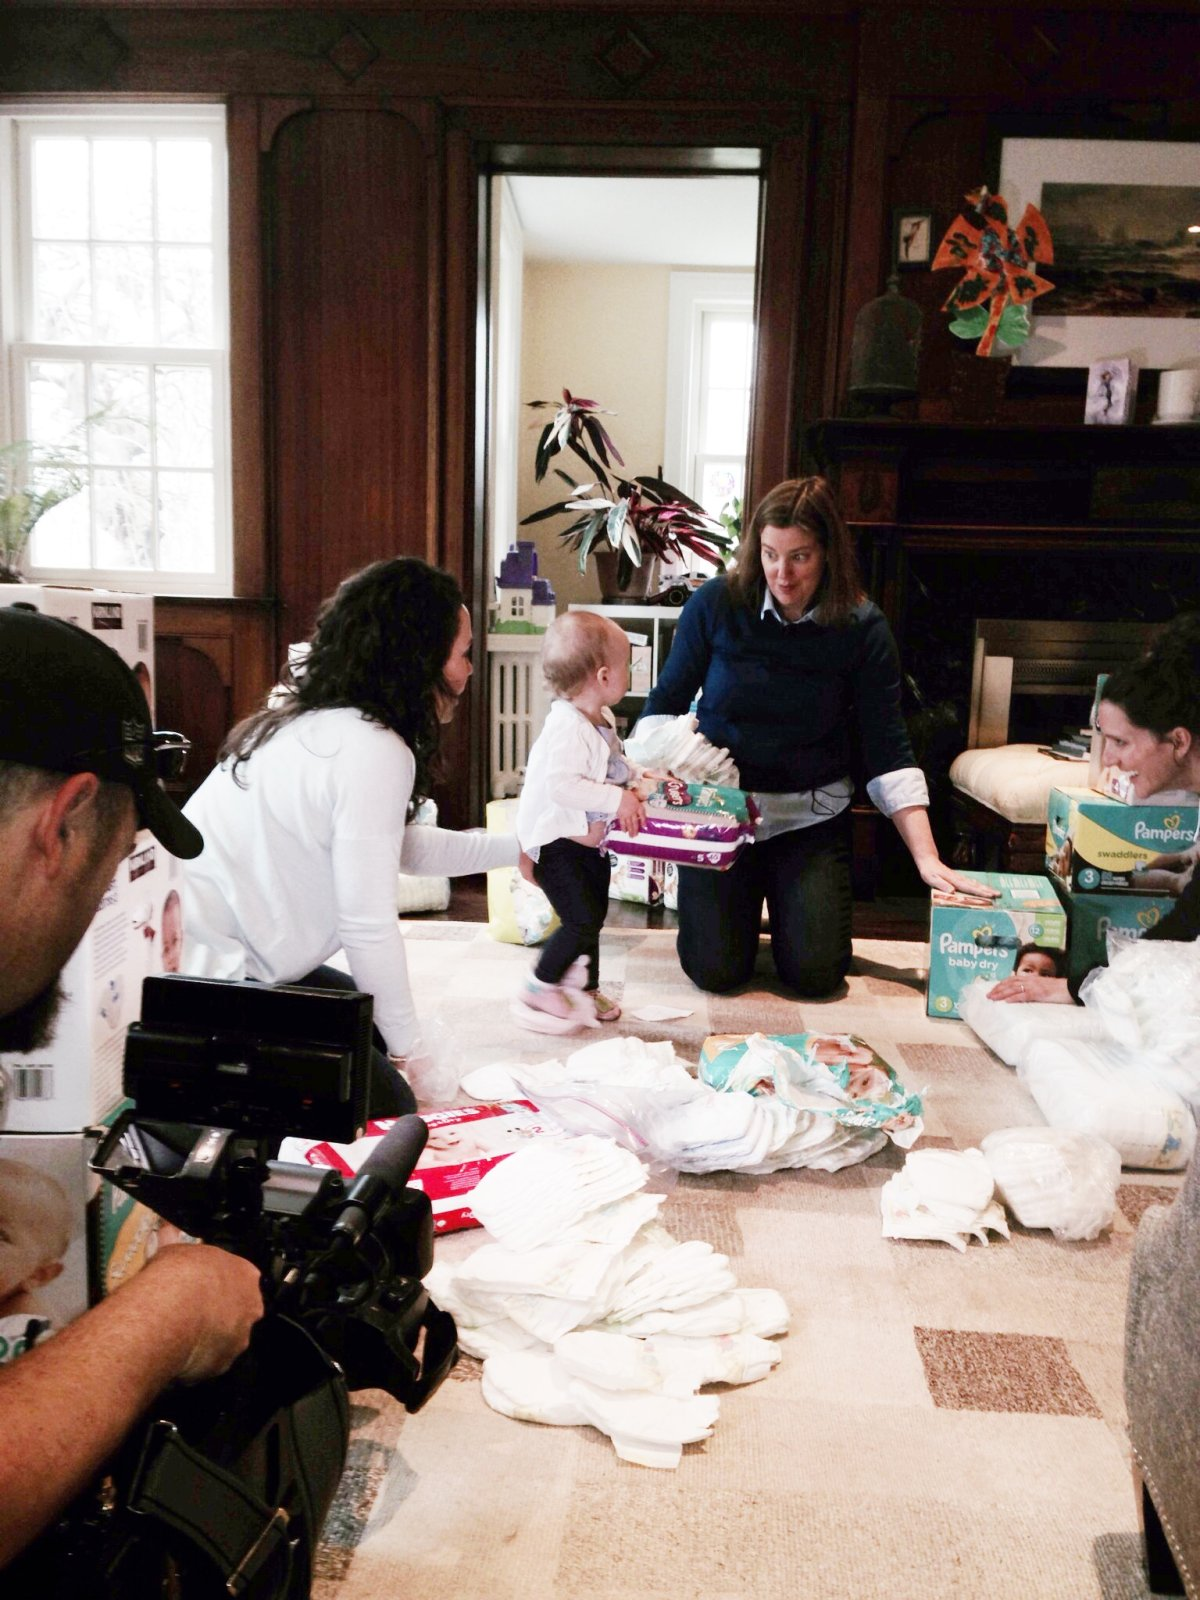 The Diaper Bank's Dale McIntosh sorting diapers.